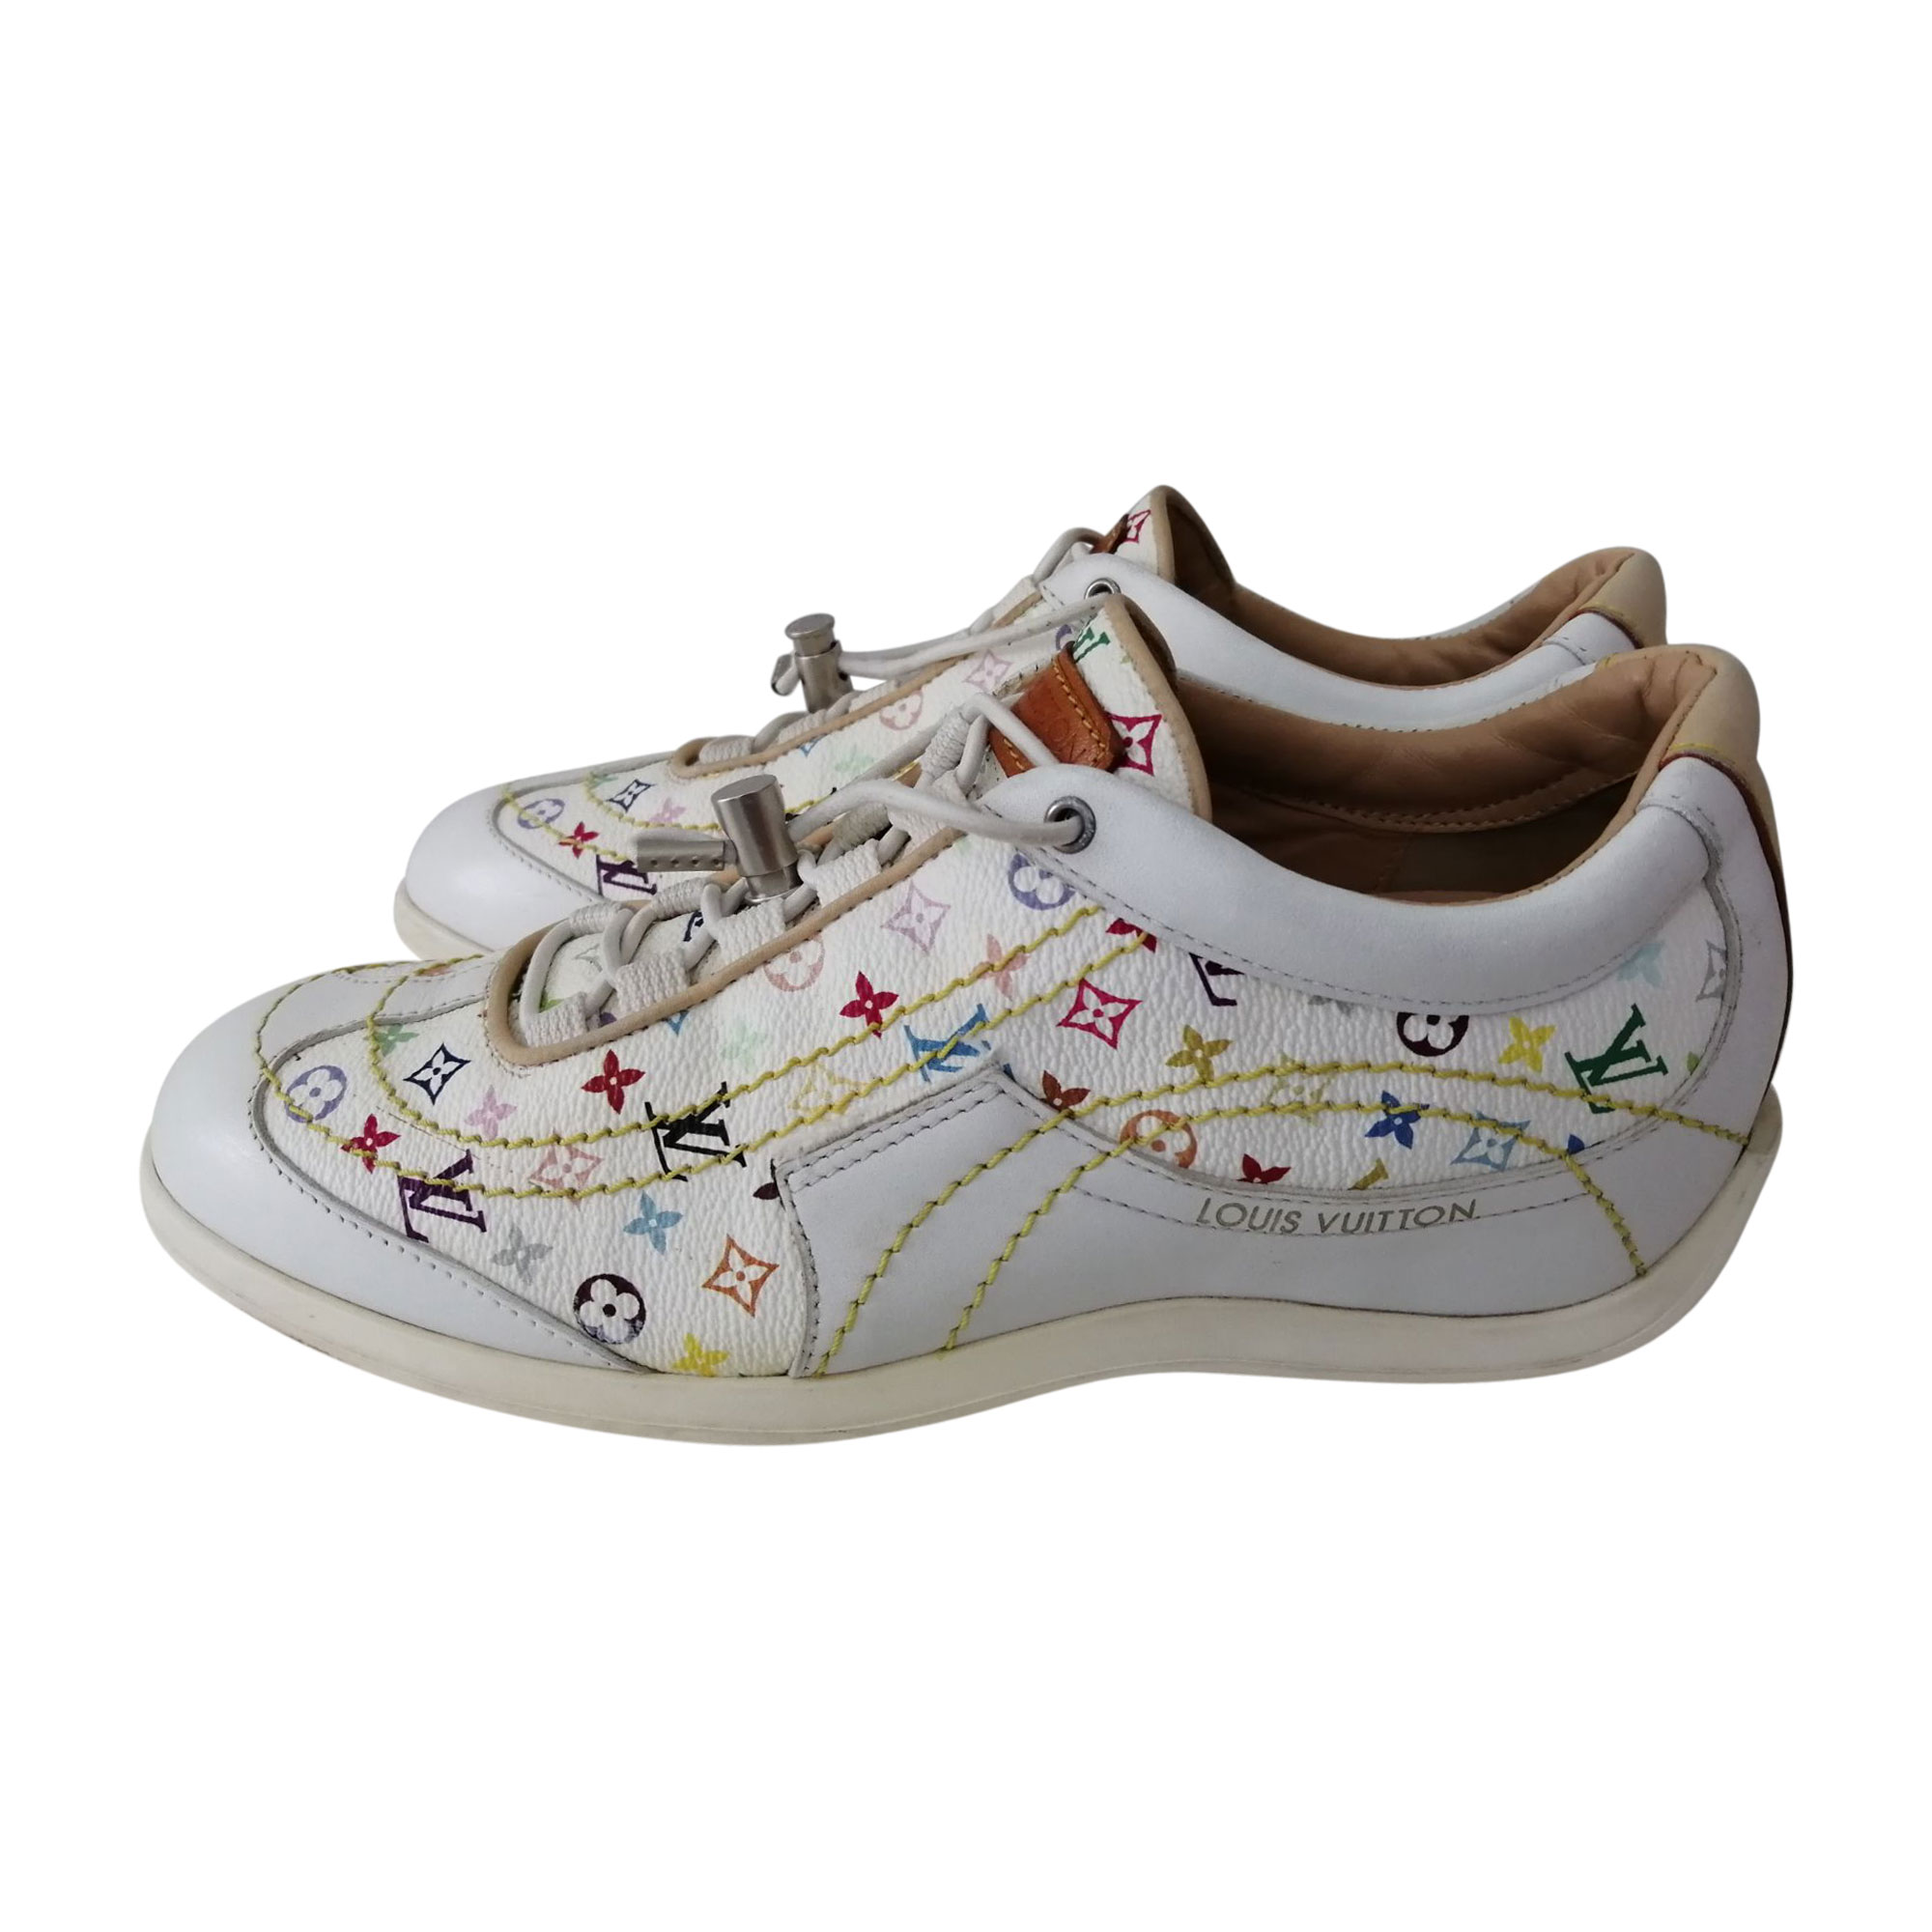 Sneakers LOUIS VUITTON White, off-white, ecru